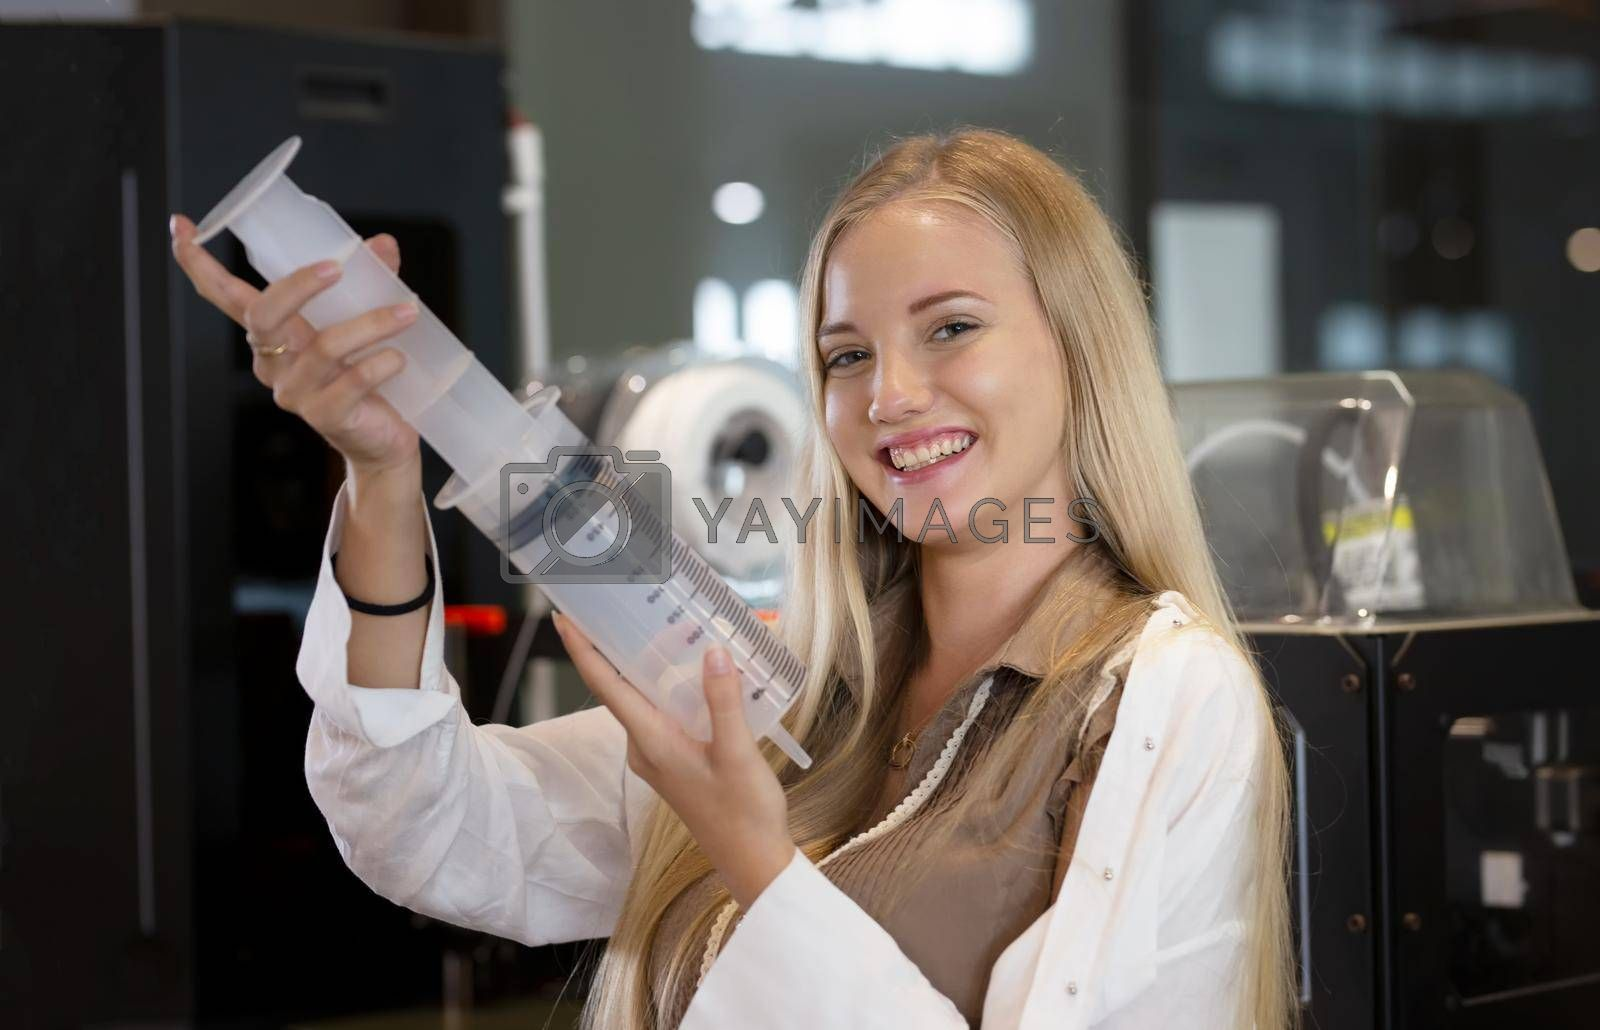 Royalty free image of Young smiling woman analyzing machine part during her scientific experiment in laboratory. by chuanchai